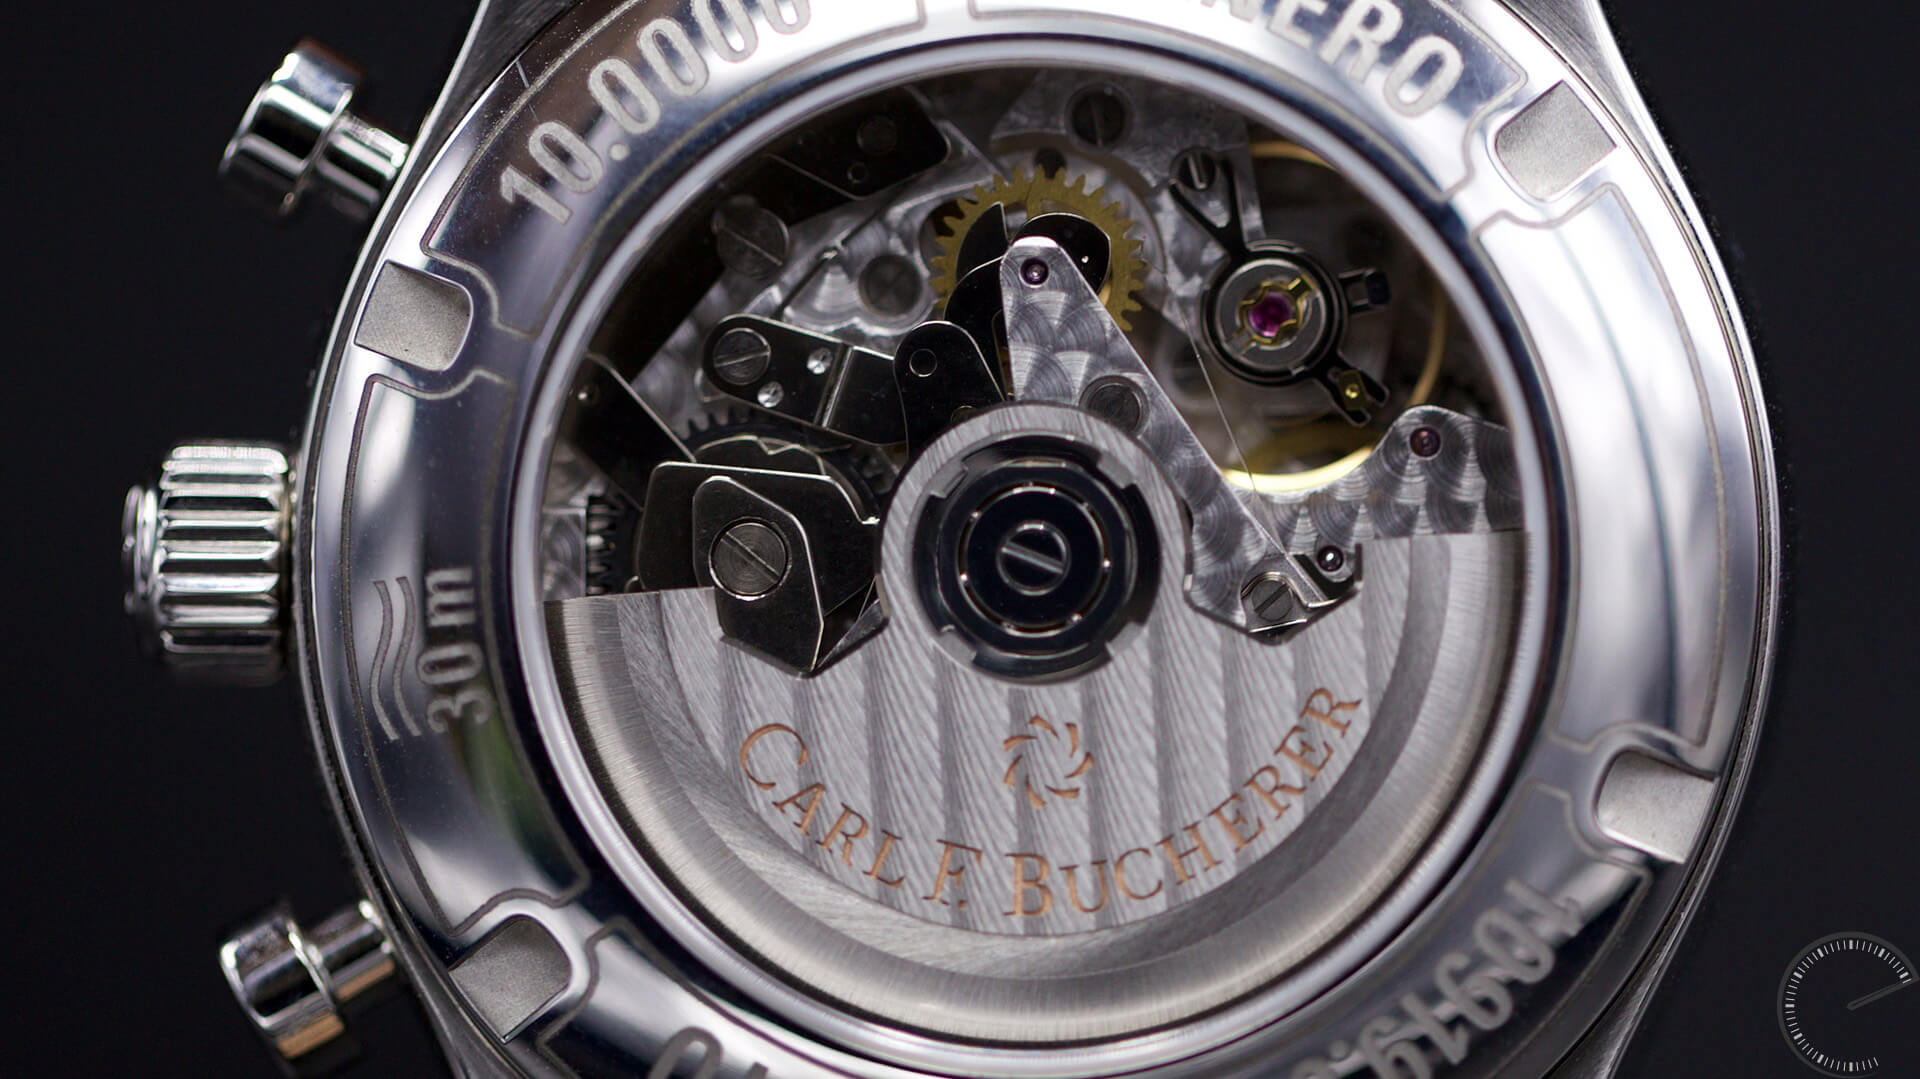 Carl_F._Bucherer_Manero_Flyback_CFB_1970_Caliber - ESCAPEMENT MAGAZINE - watch reviews by Angus Davies